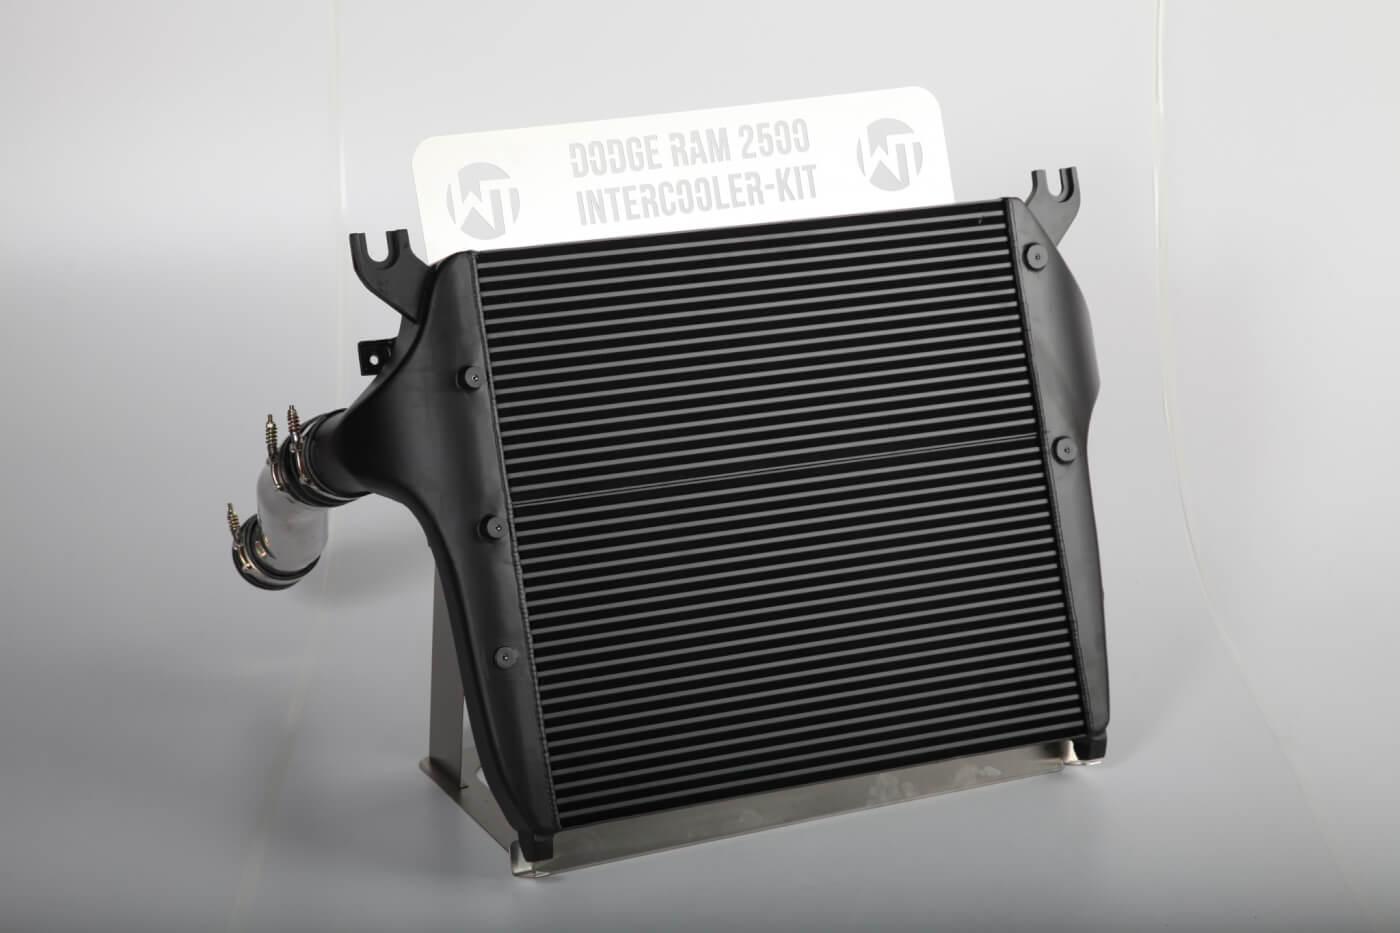 2010-2012 Dodge Ram 2500 Performance Intercooler